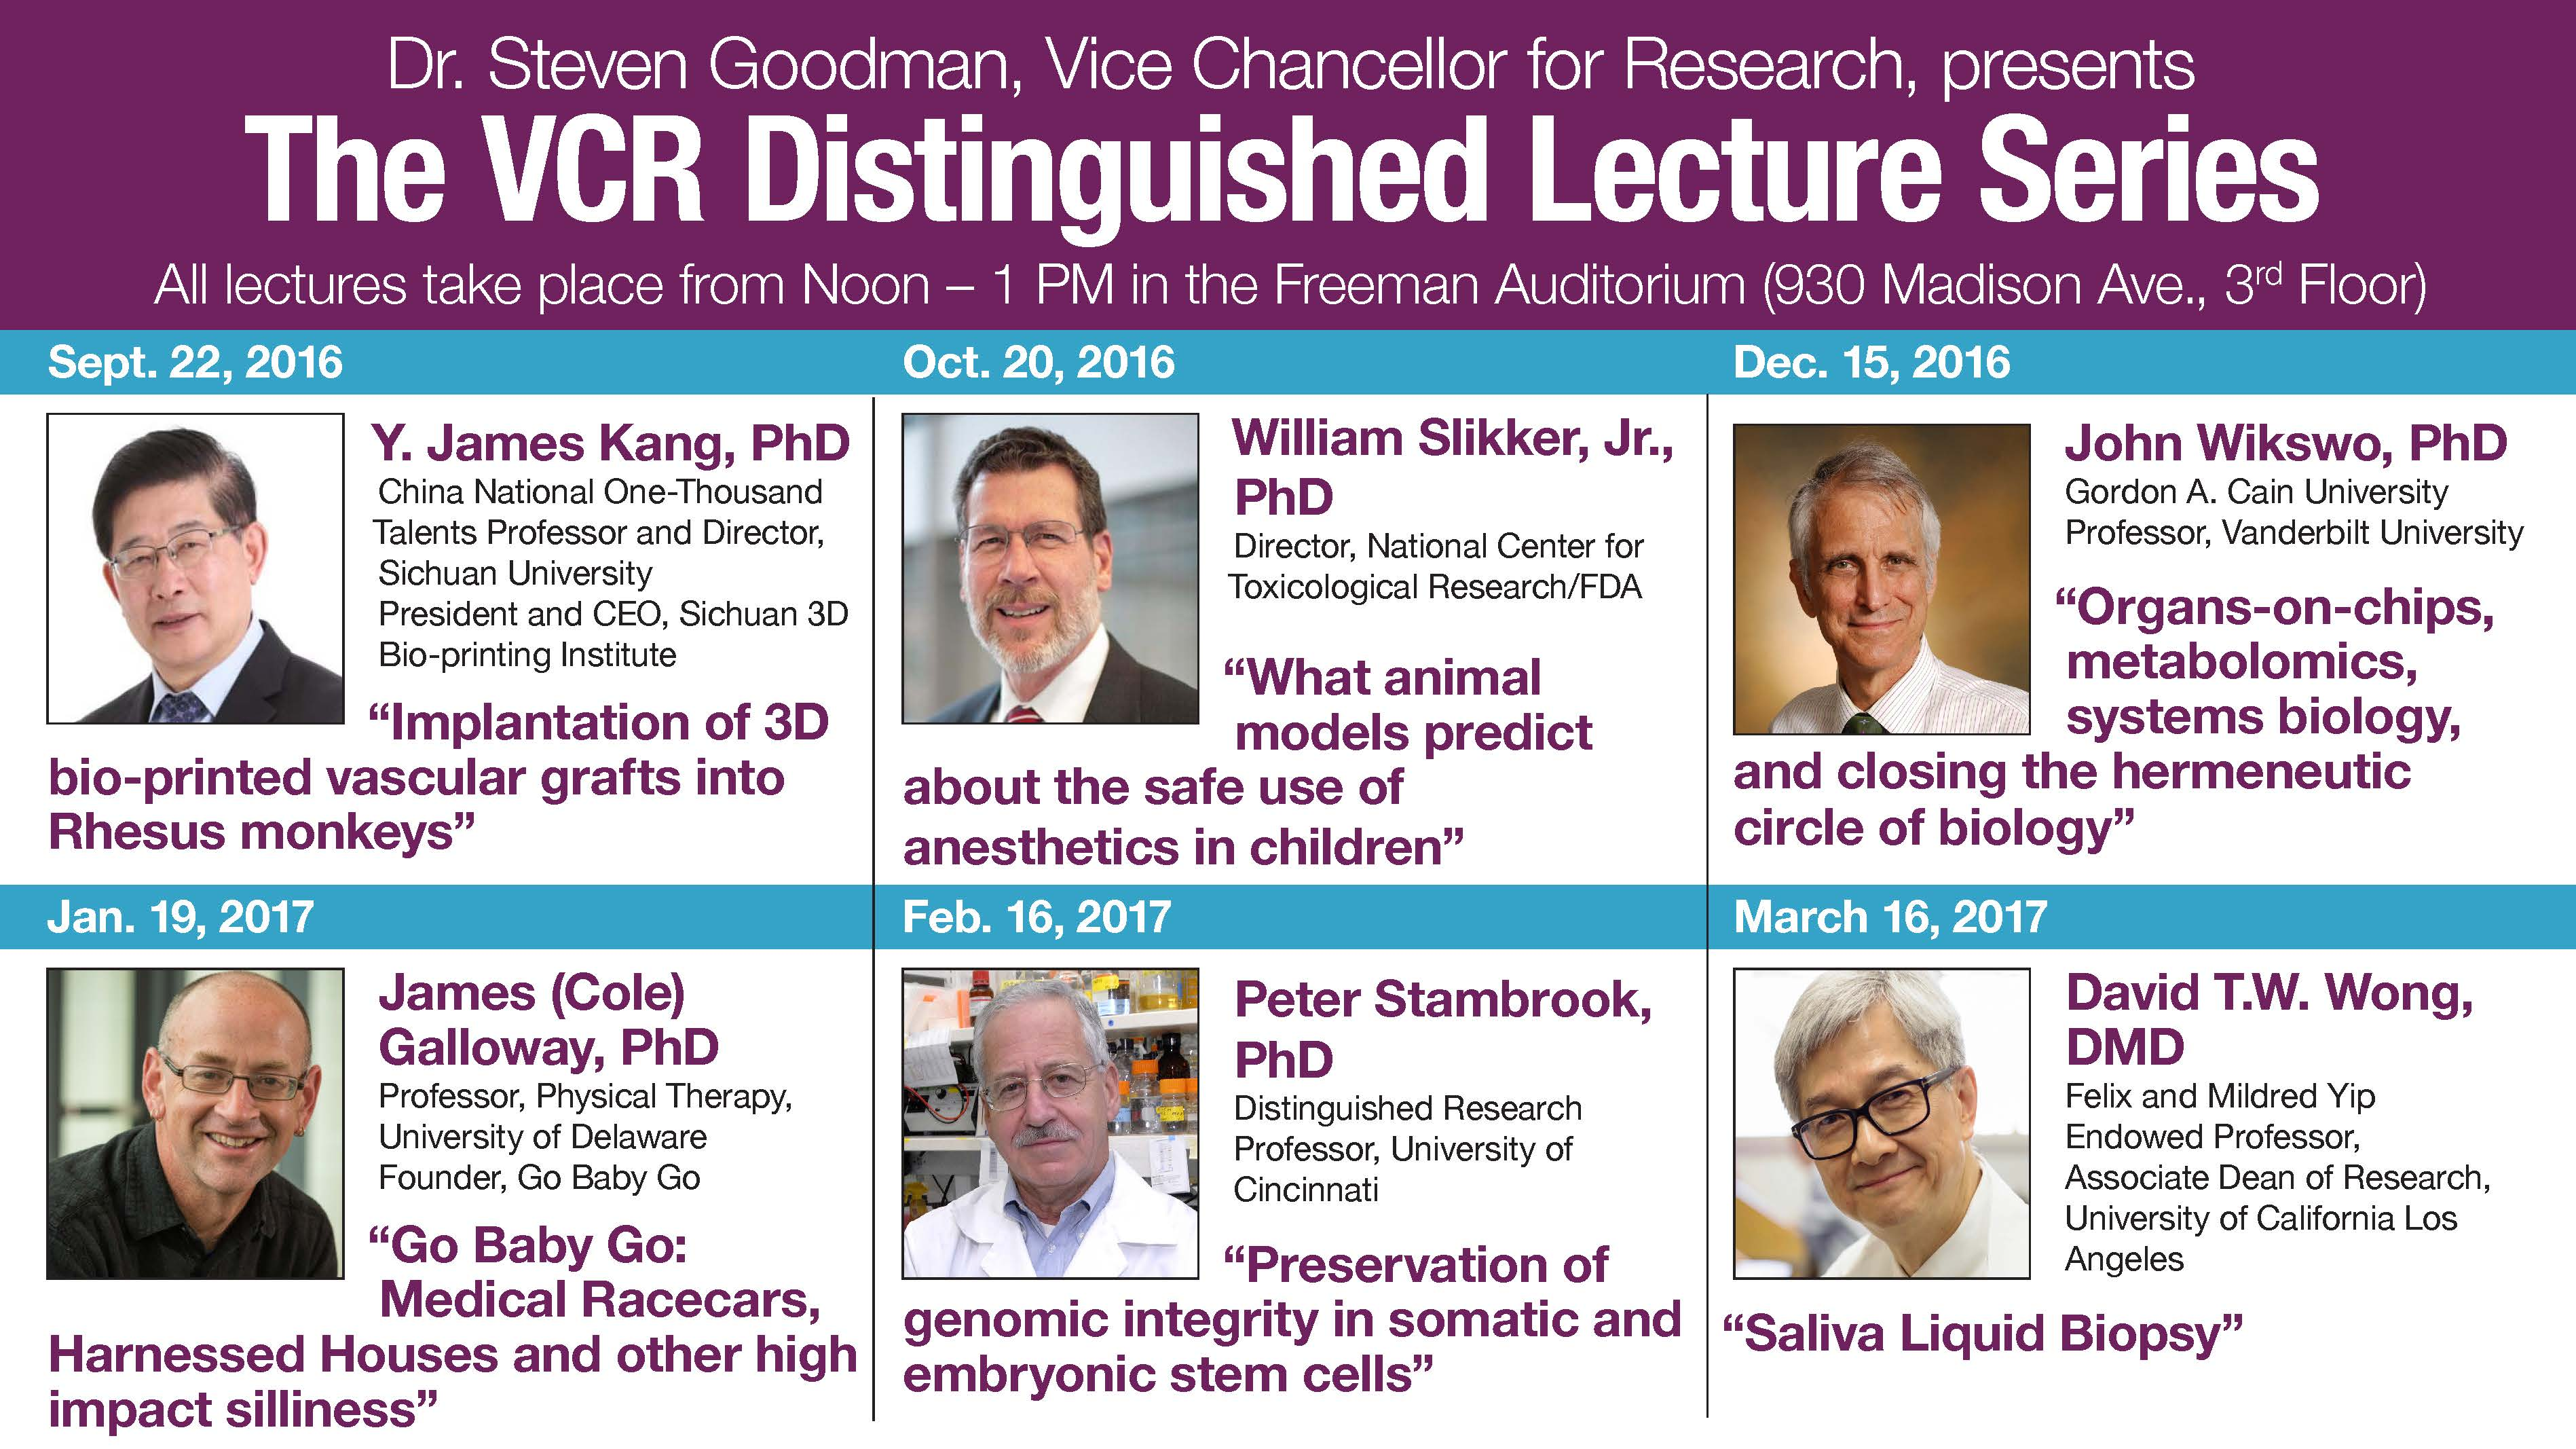 VCR Distinguished Lecture Series Event Schedule